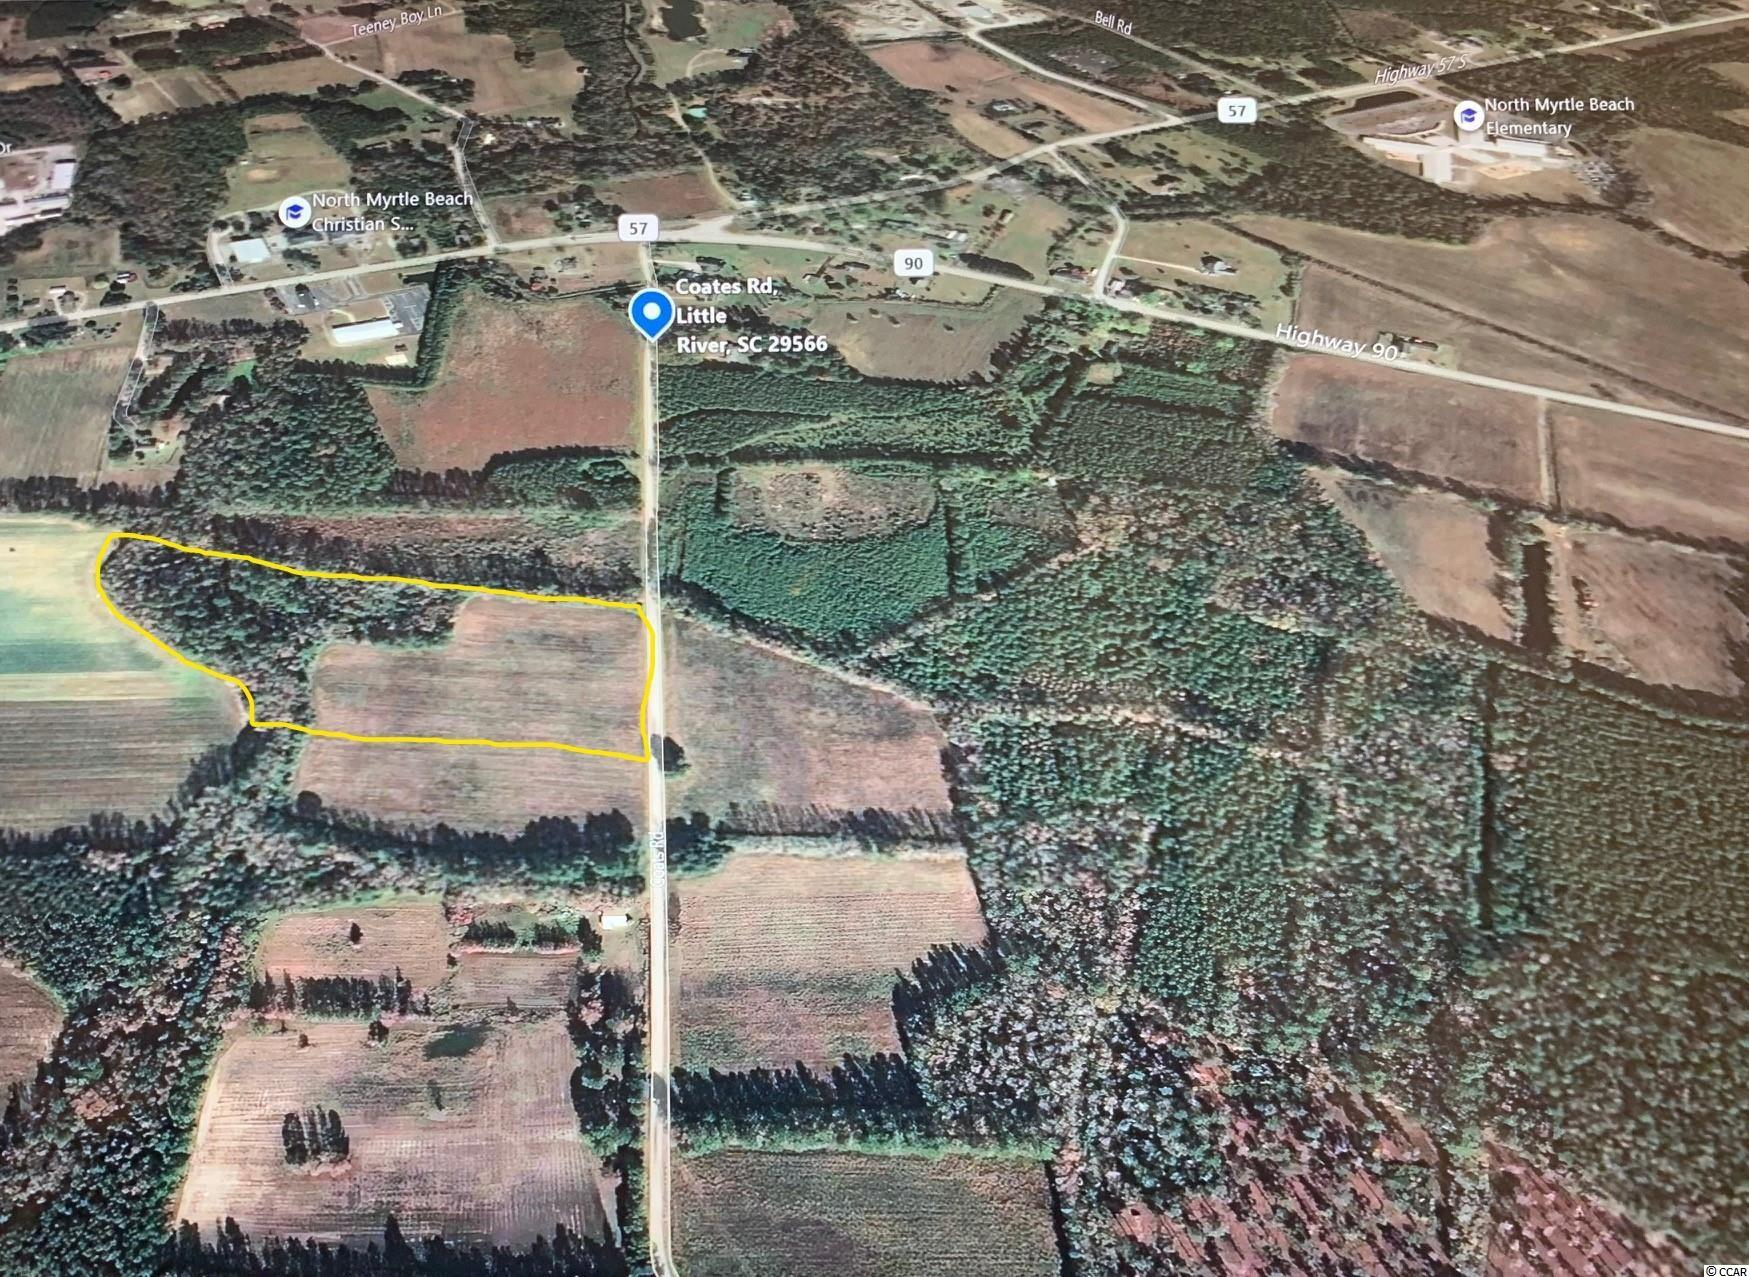 10.76 acres just off of Hwy. 90/Hwy 57 and just down the road from the NMB connector road and Hwy 22.  Zoned  CFA